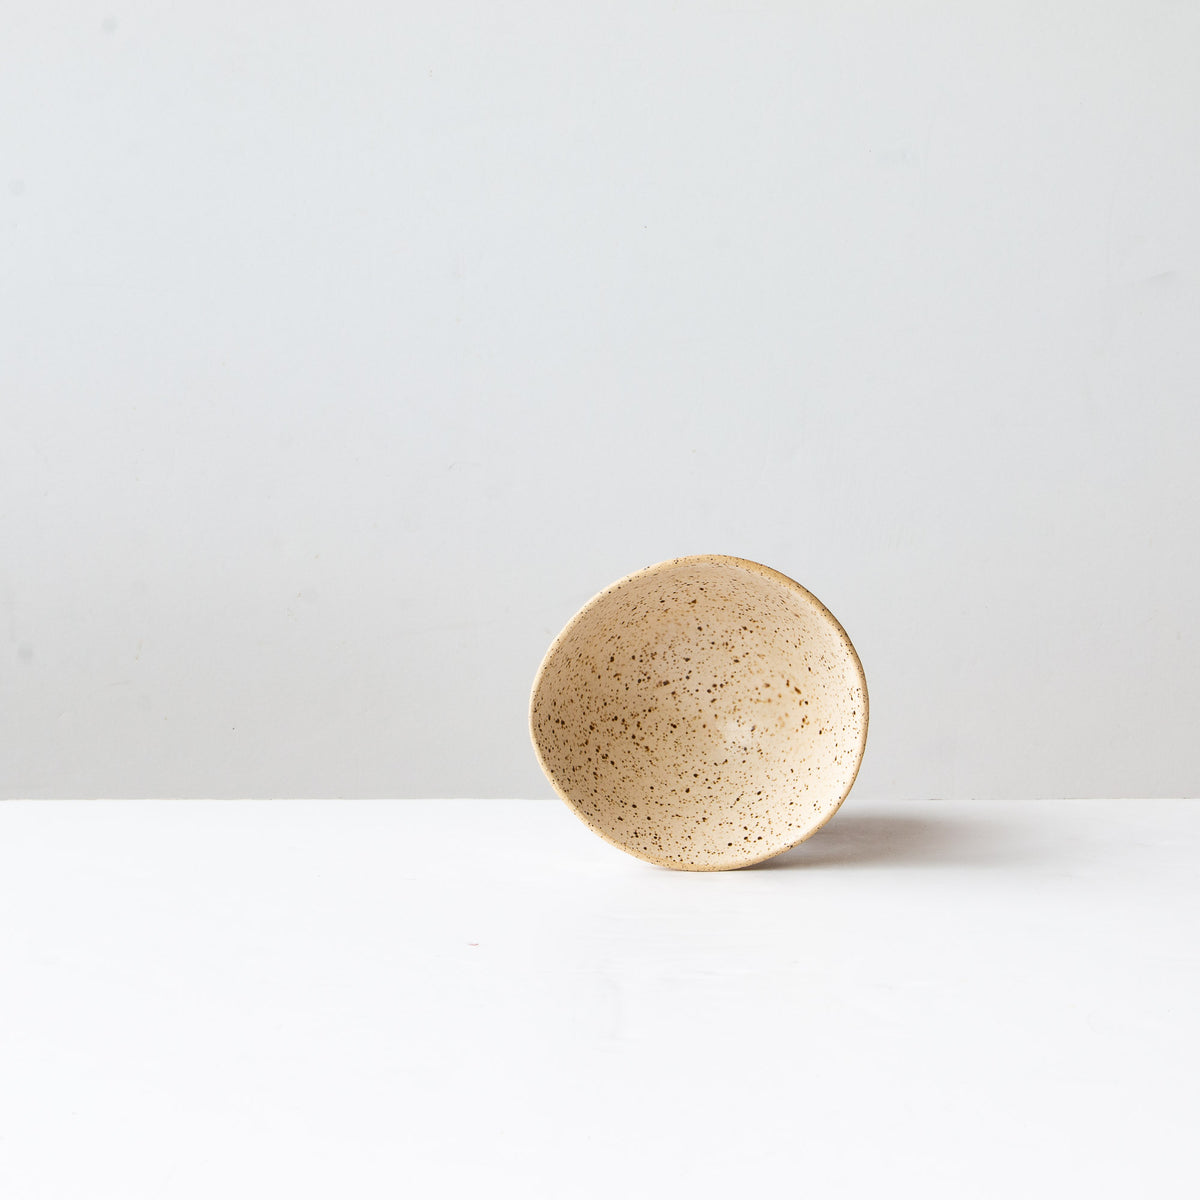 Off-White- Handmade Freckled Ice Cream Bowl in Sandstone Ceramic - Sold by Chic & Basta